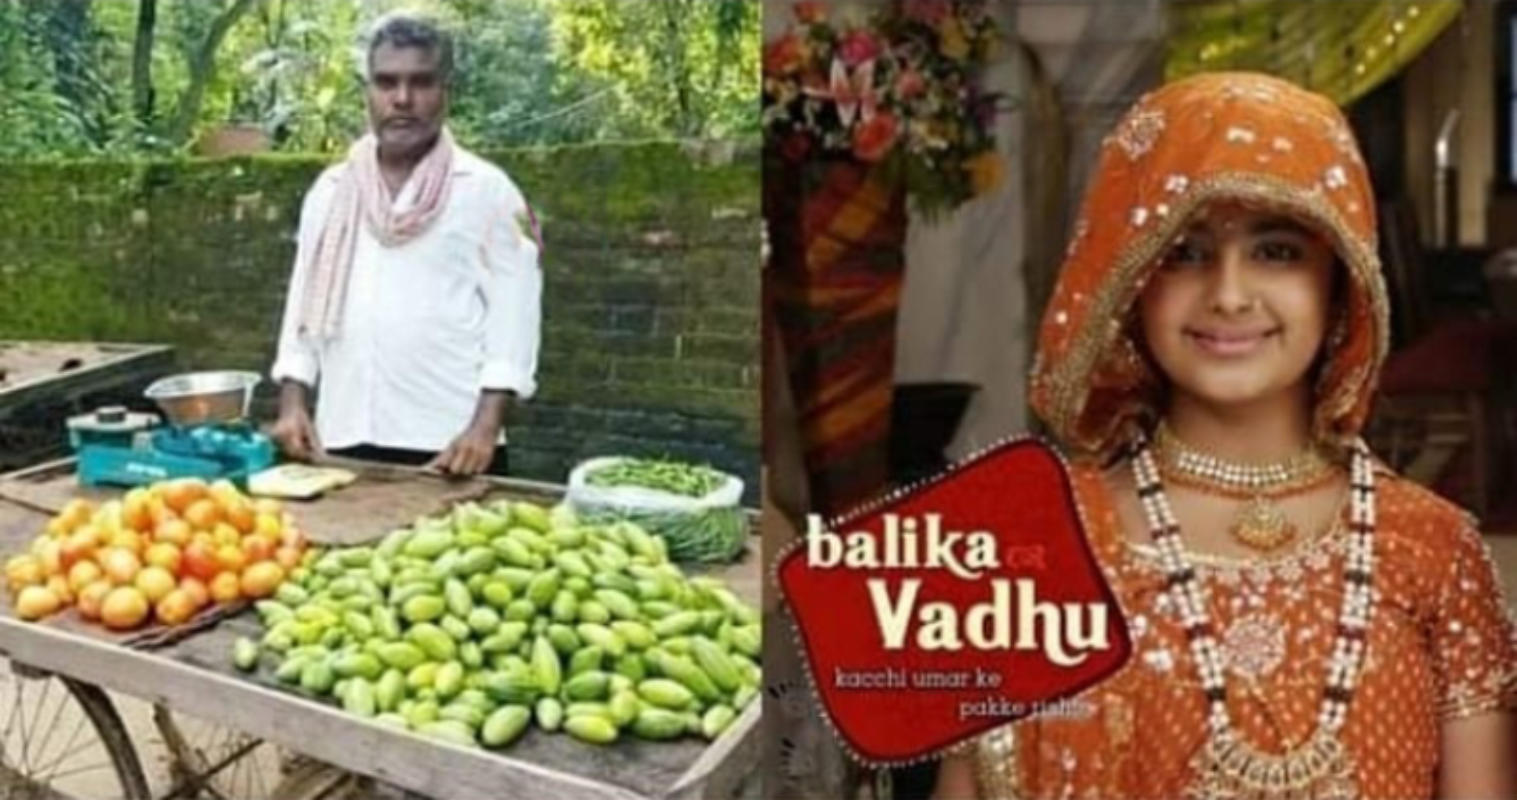 Director of TV show 'Balika Vadhu' sells vegetable to earn a living amid pandemic